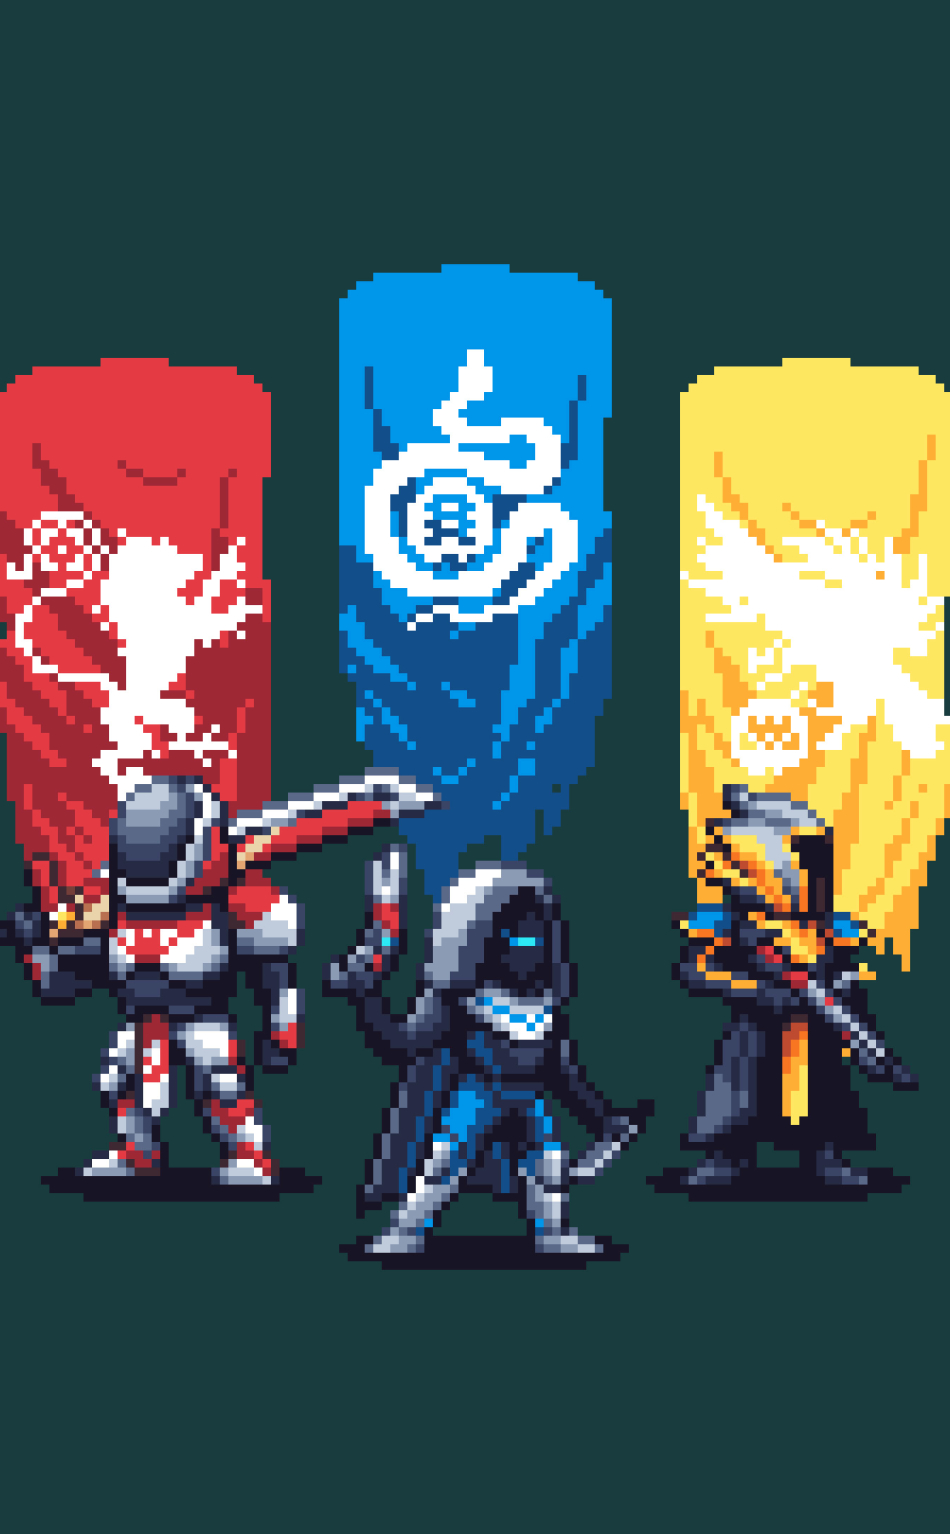 Destiny 2 Pixel Artwork, HD 4K Wallpaper